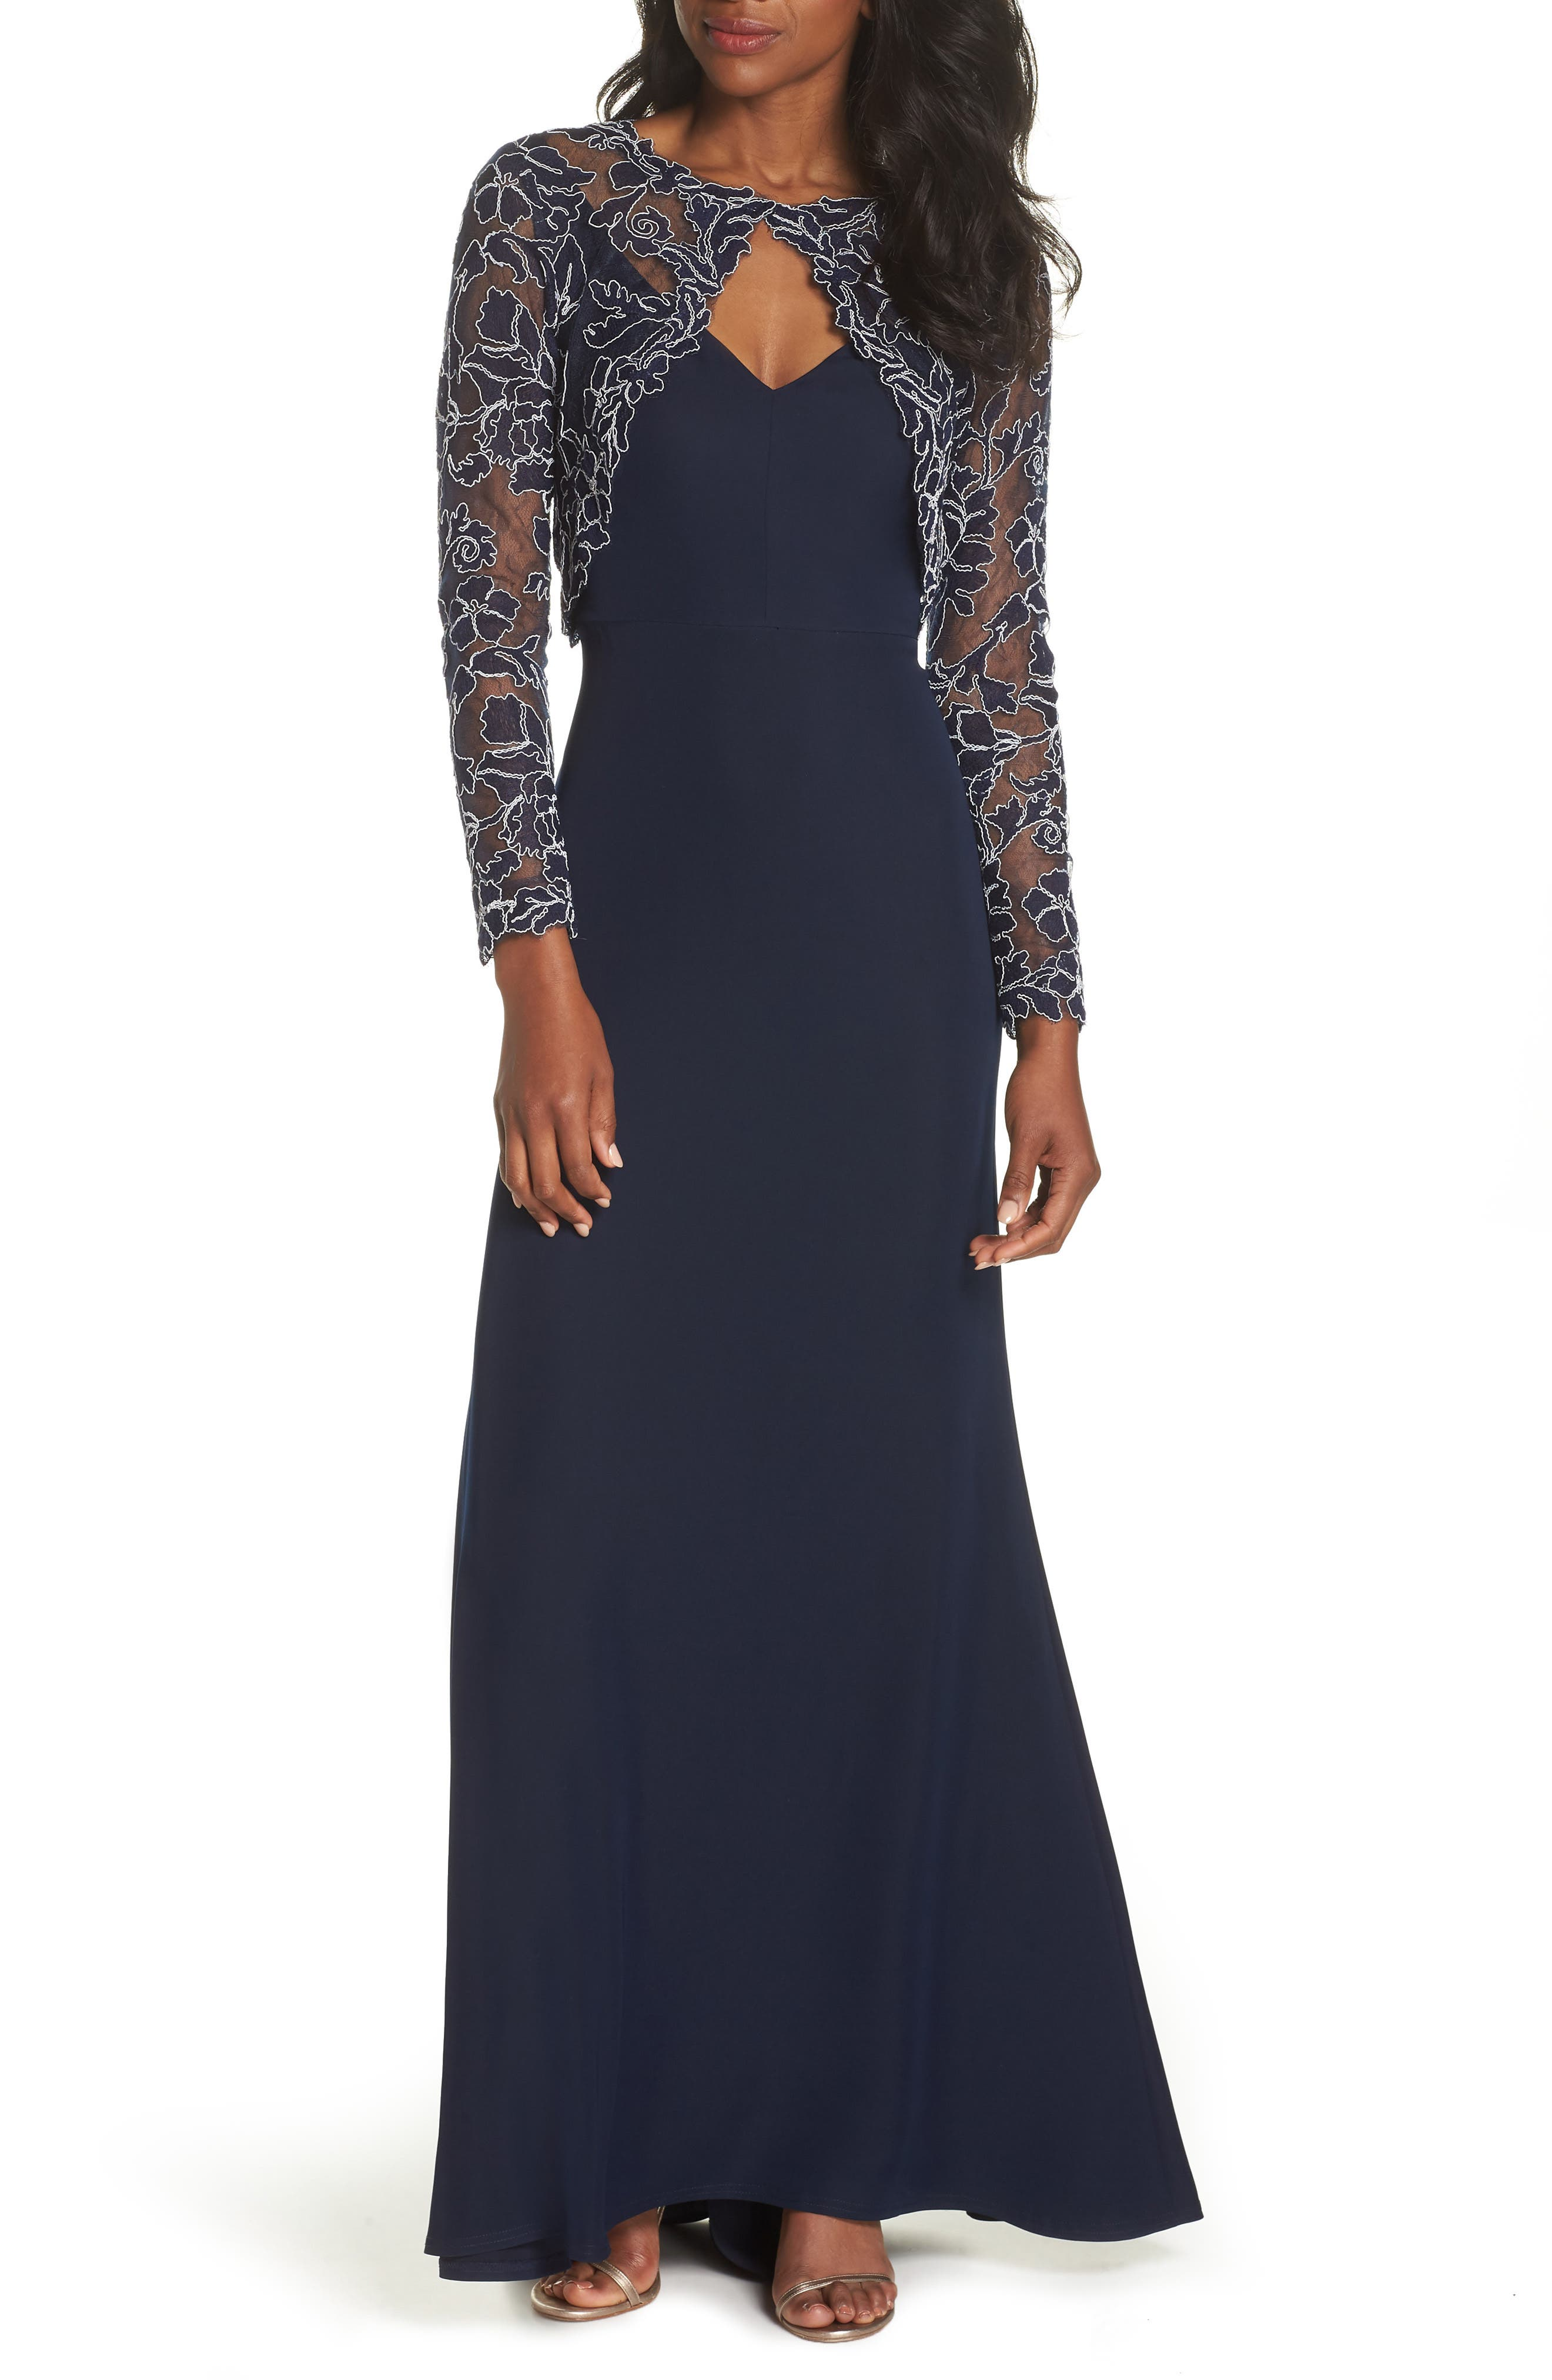 TADASHI SHOJI, Crepe & Embroidered Lace Gown, Main thumbnail 1, color, NAVY/ IVORY